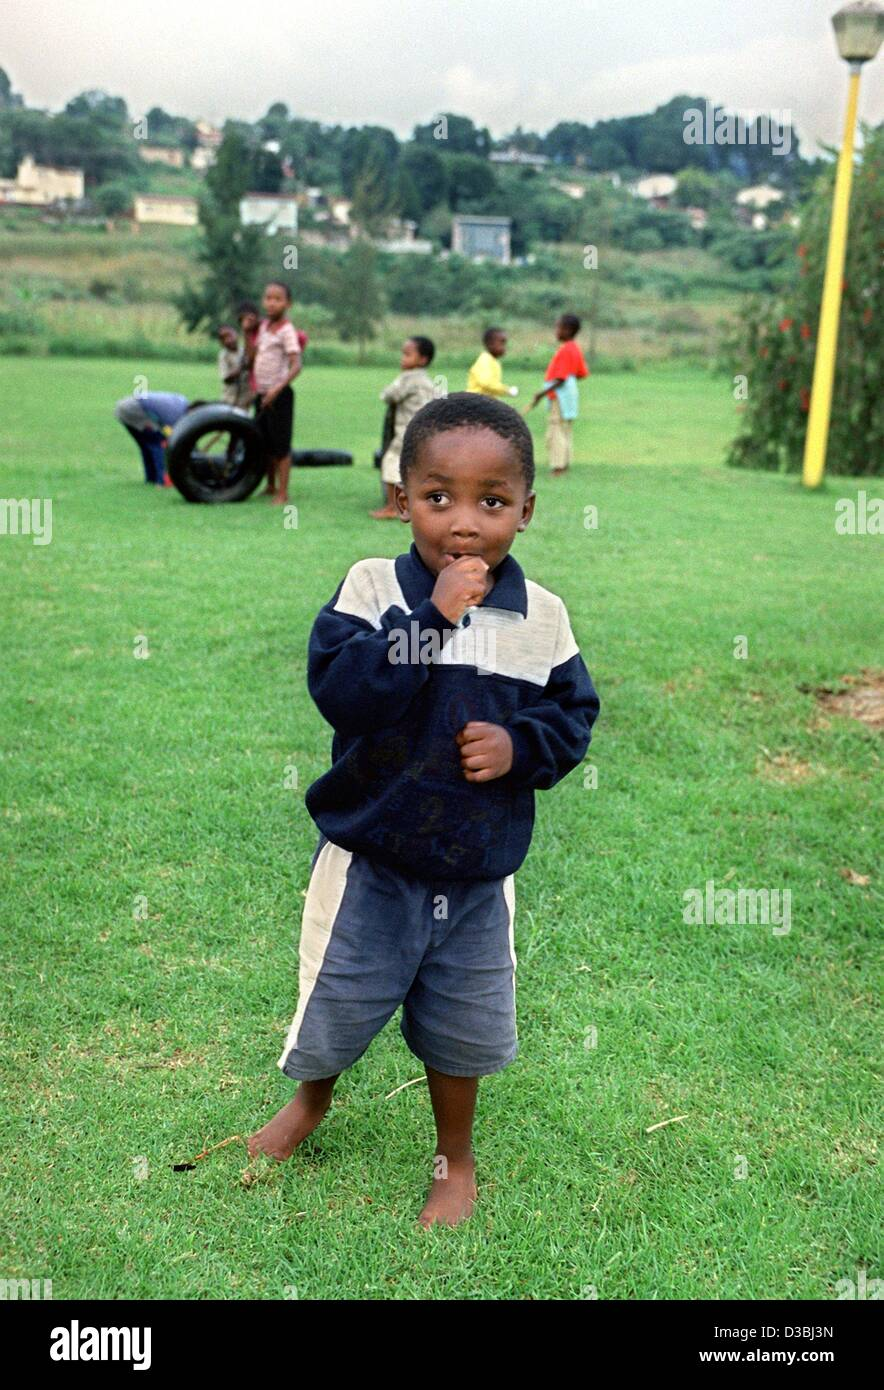 (dpa files) - With his eyes wide open, a boy stands on the lawn of the SOS Children's Village in Mbabane, Swaziland, - Stock Image